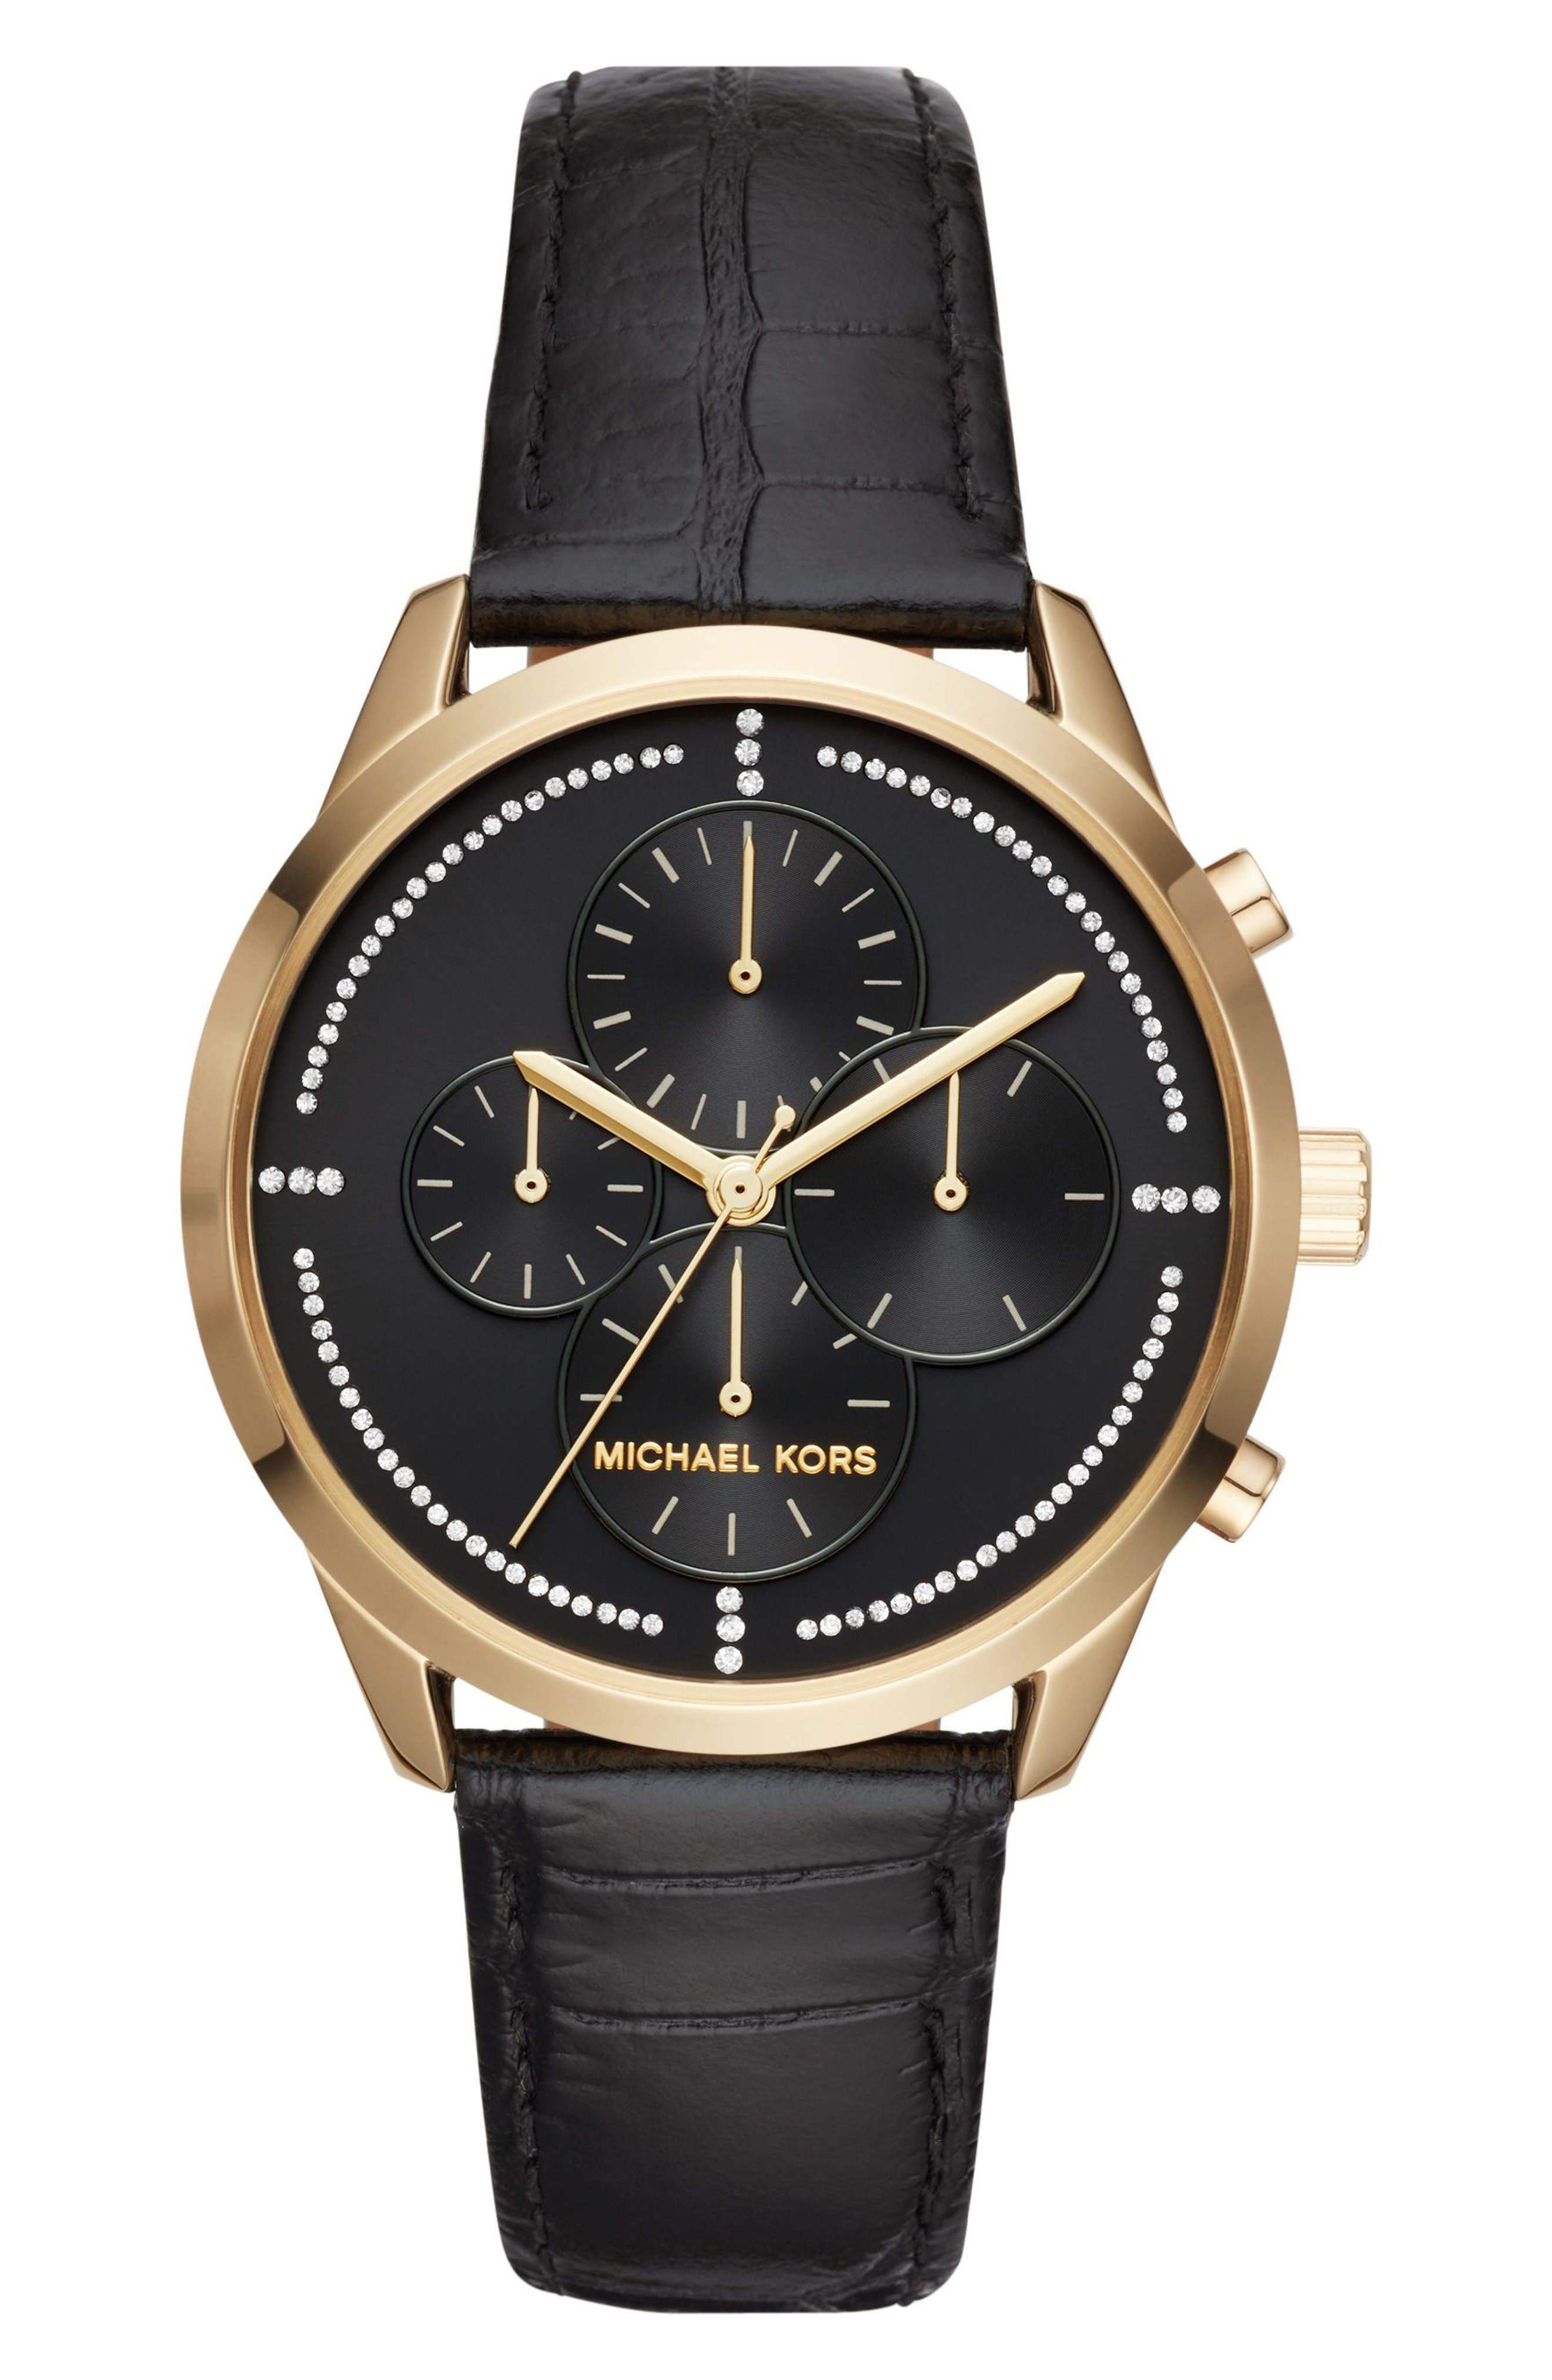 Main Image - Michael Kors Slater Chronograph Leather Strap Watch, 40mm